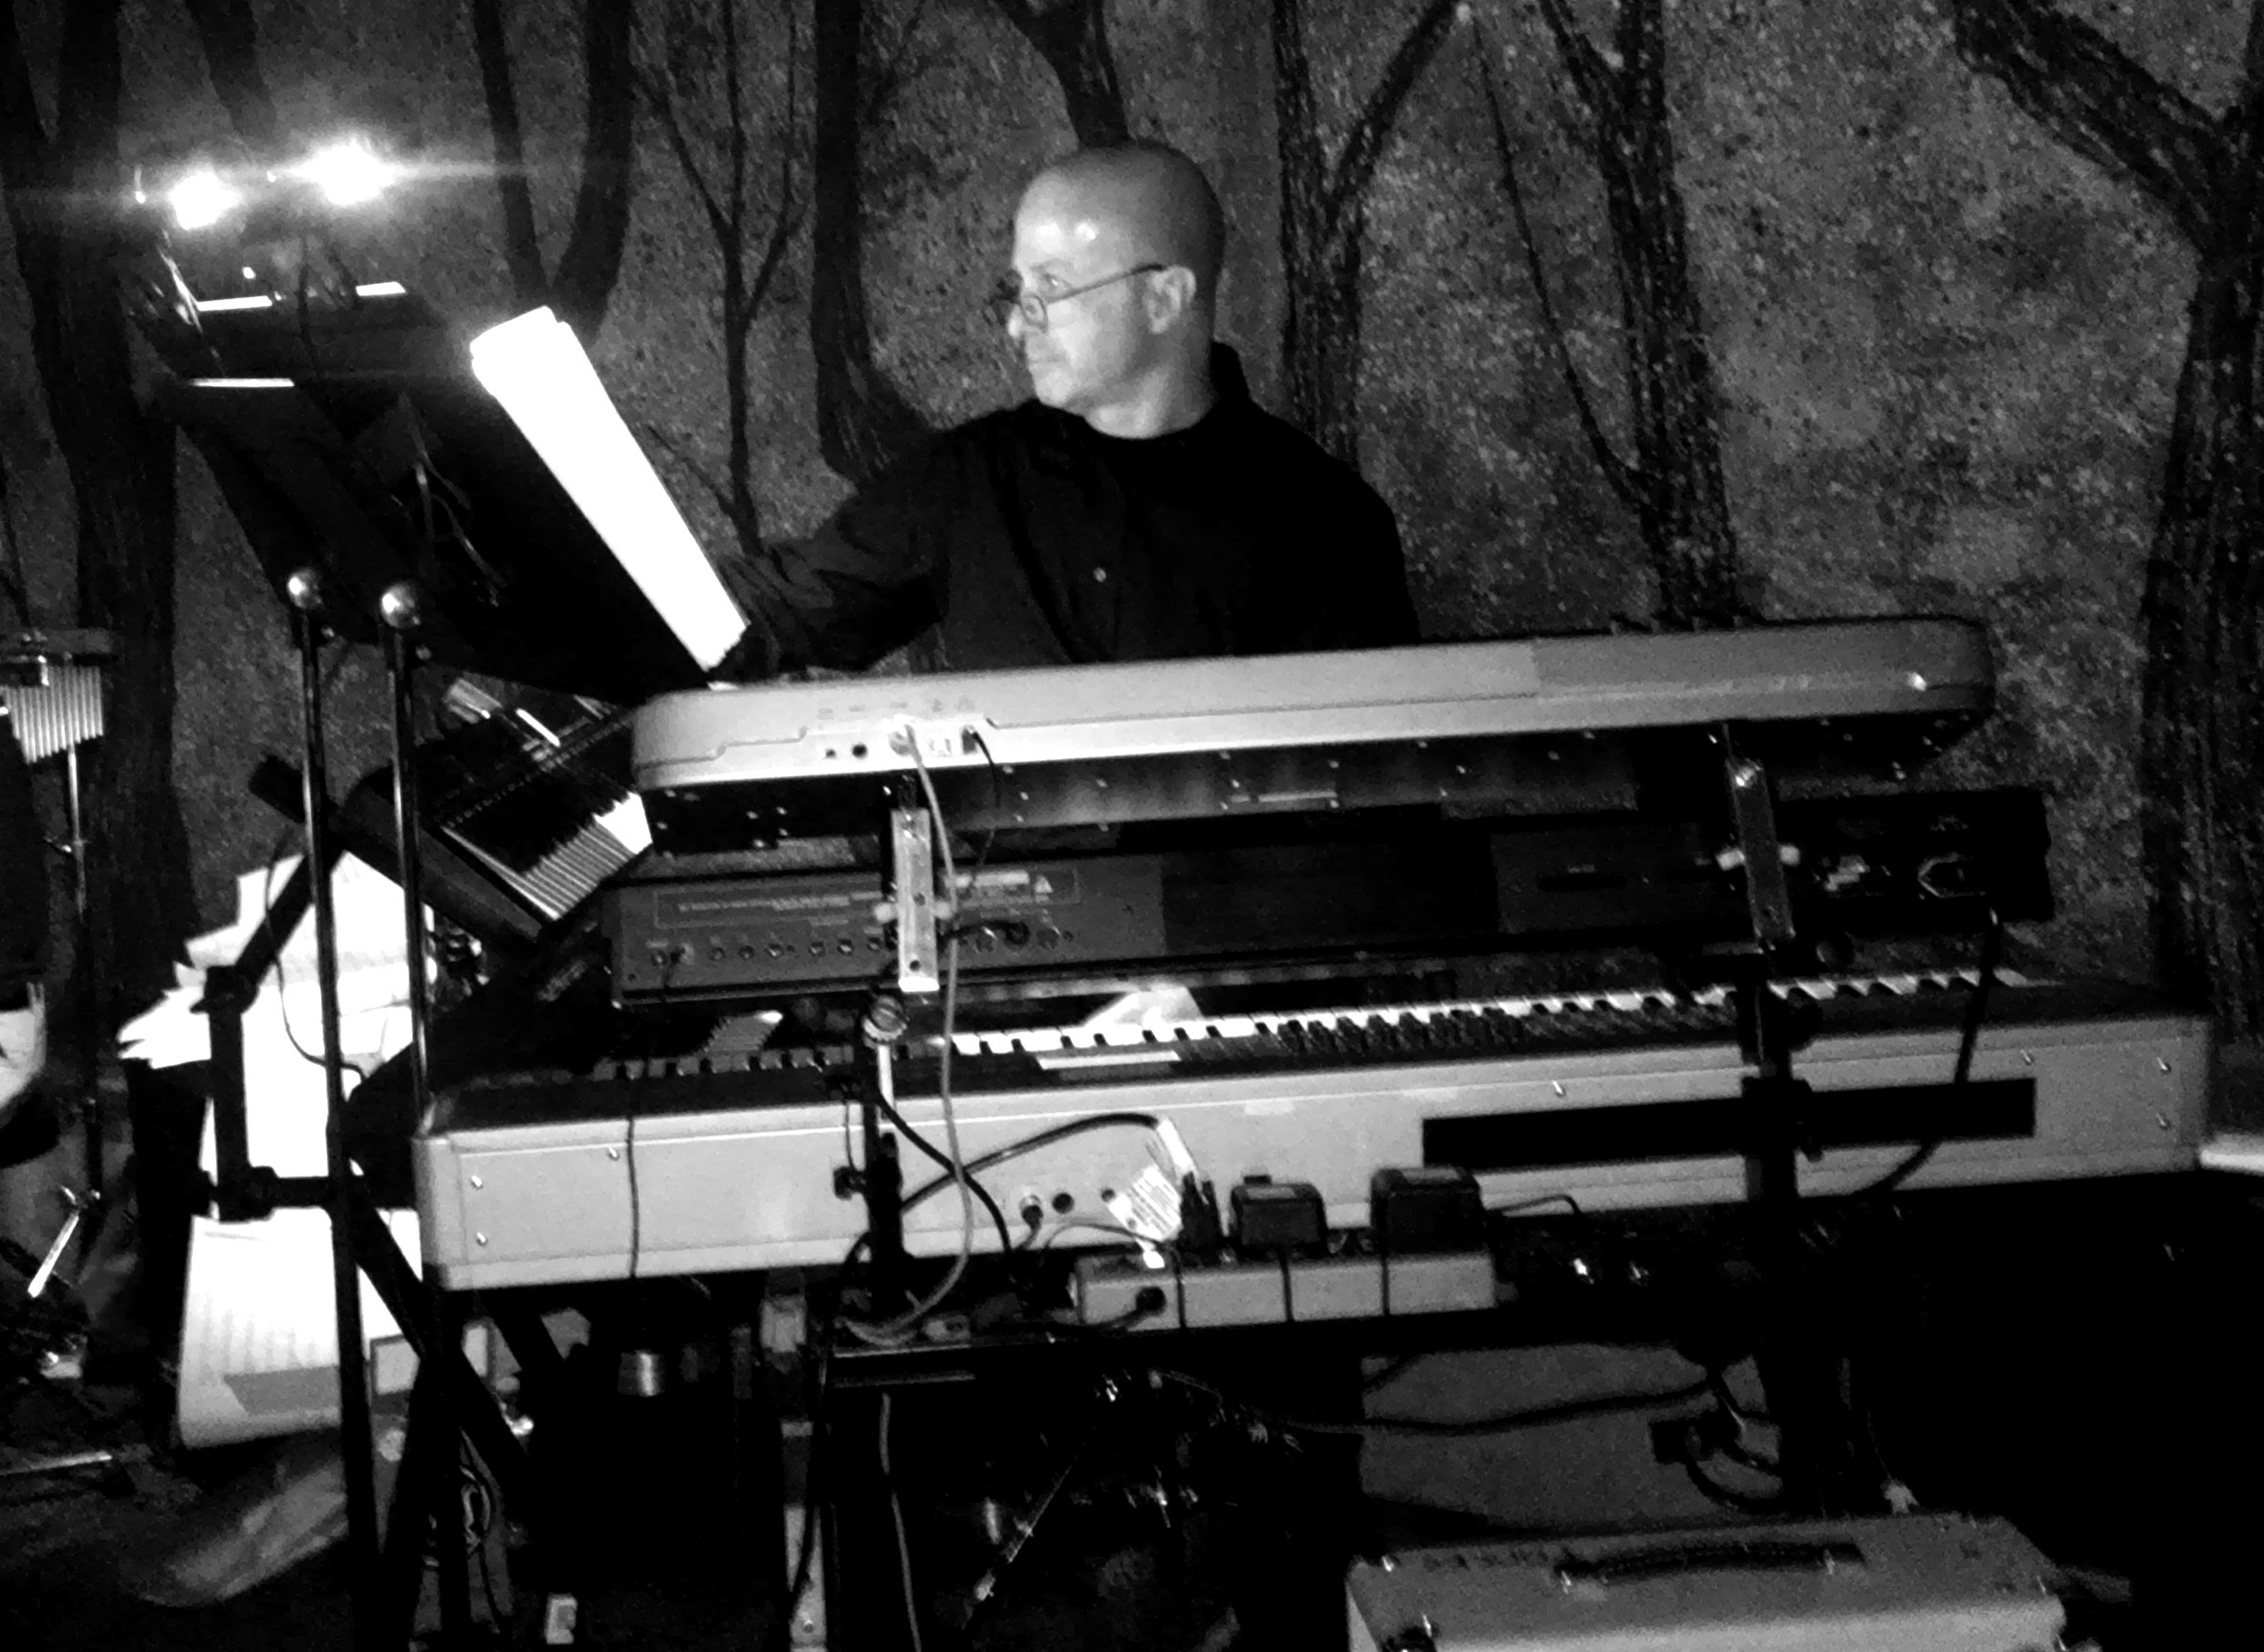 Allan Loucks live on keyboards 2015